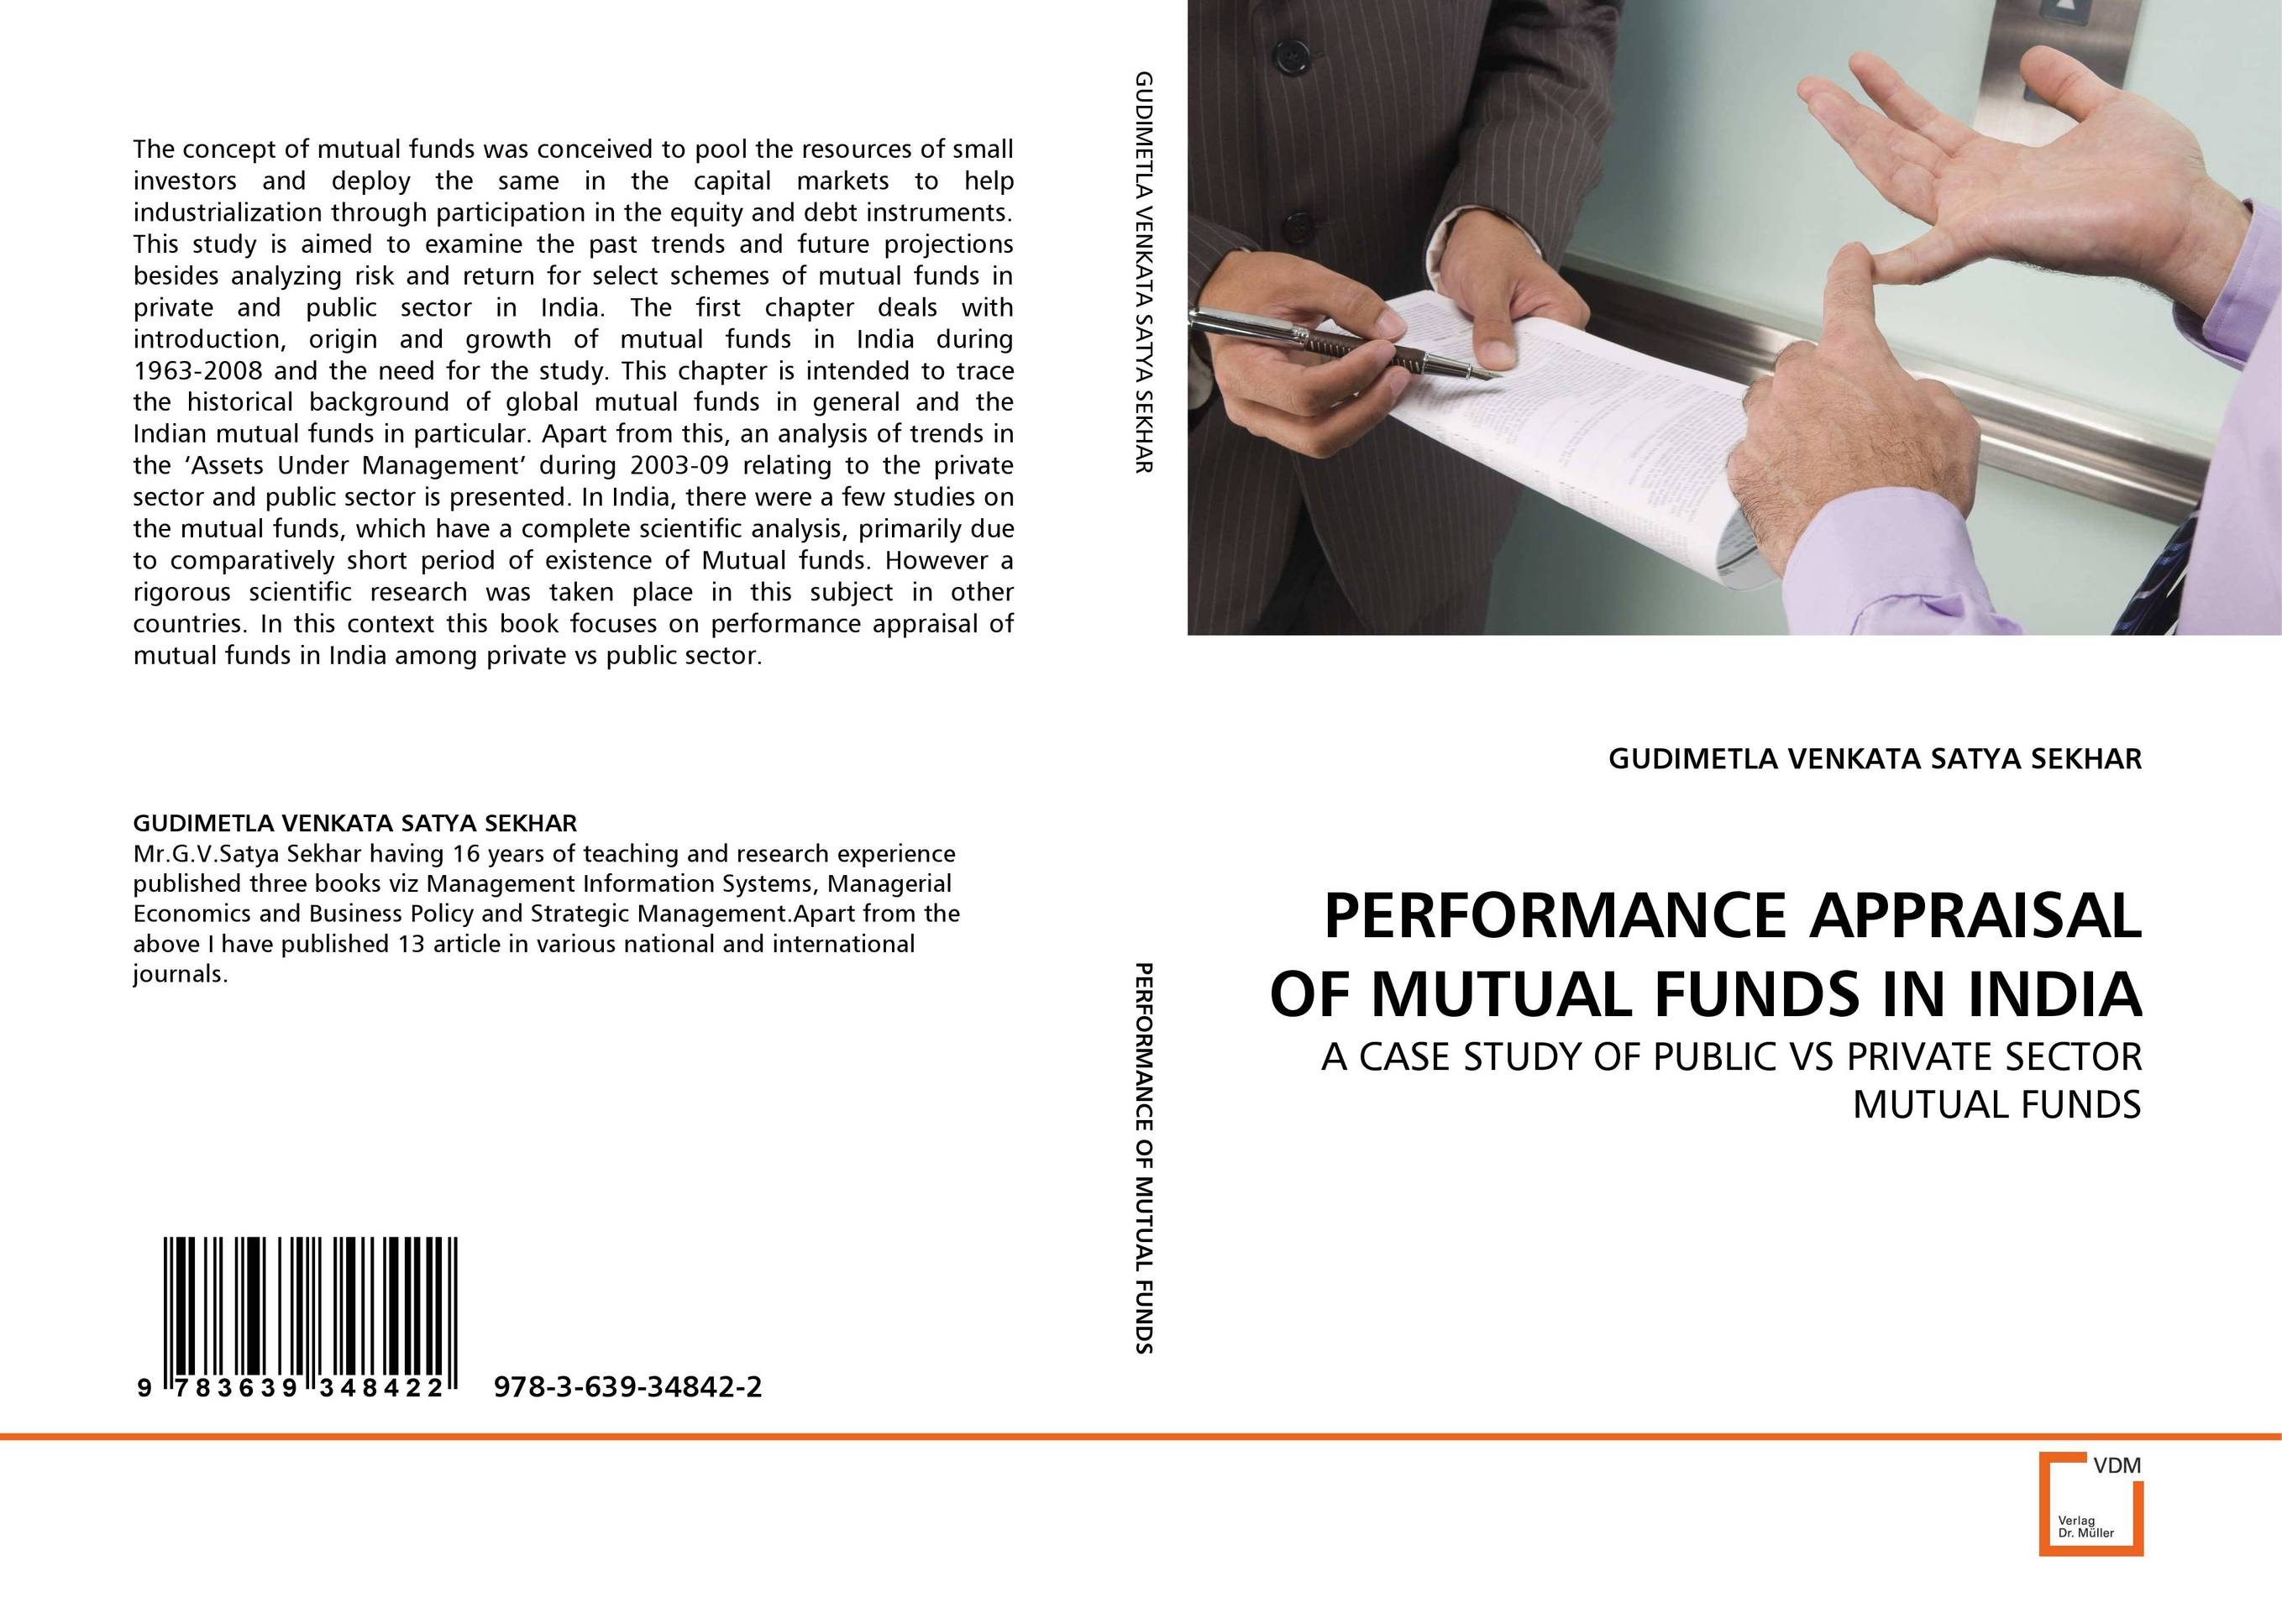 PERFORMANCE APPRAISAL OF MUTUAL FUNDS IN INDIA john haslem a mutual funds portfolio structures analysis management and stewardship